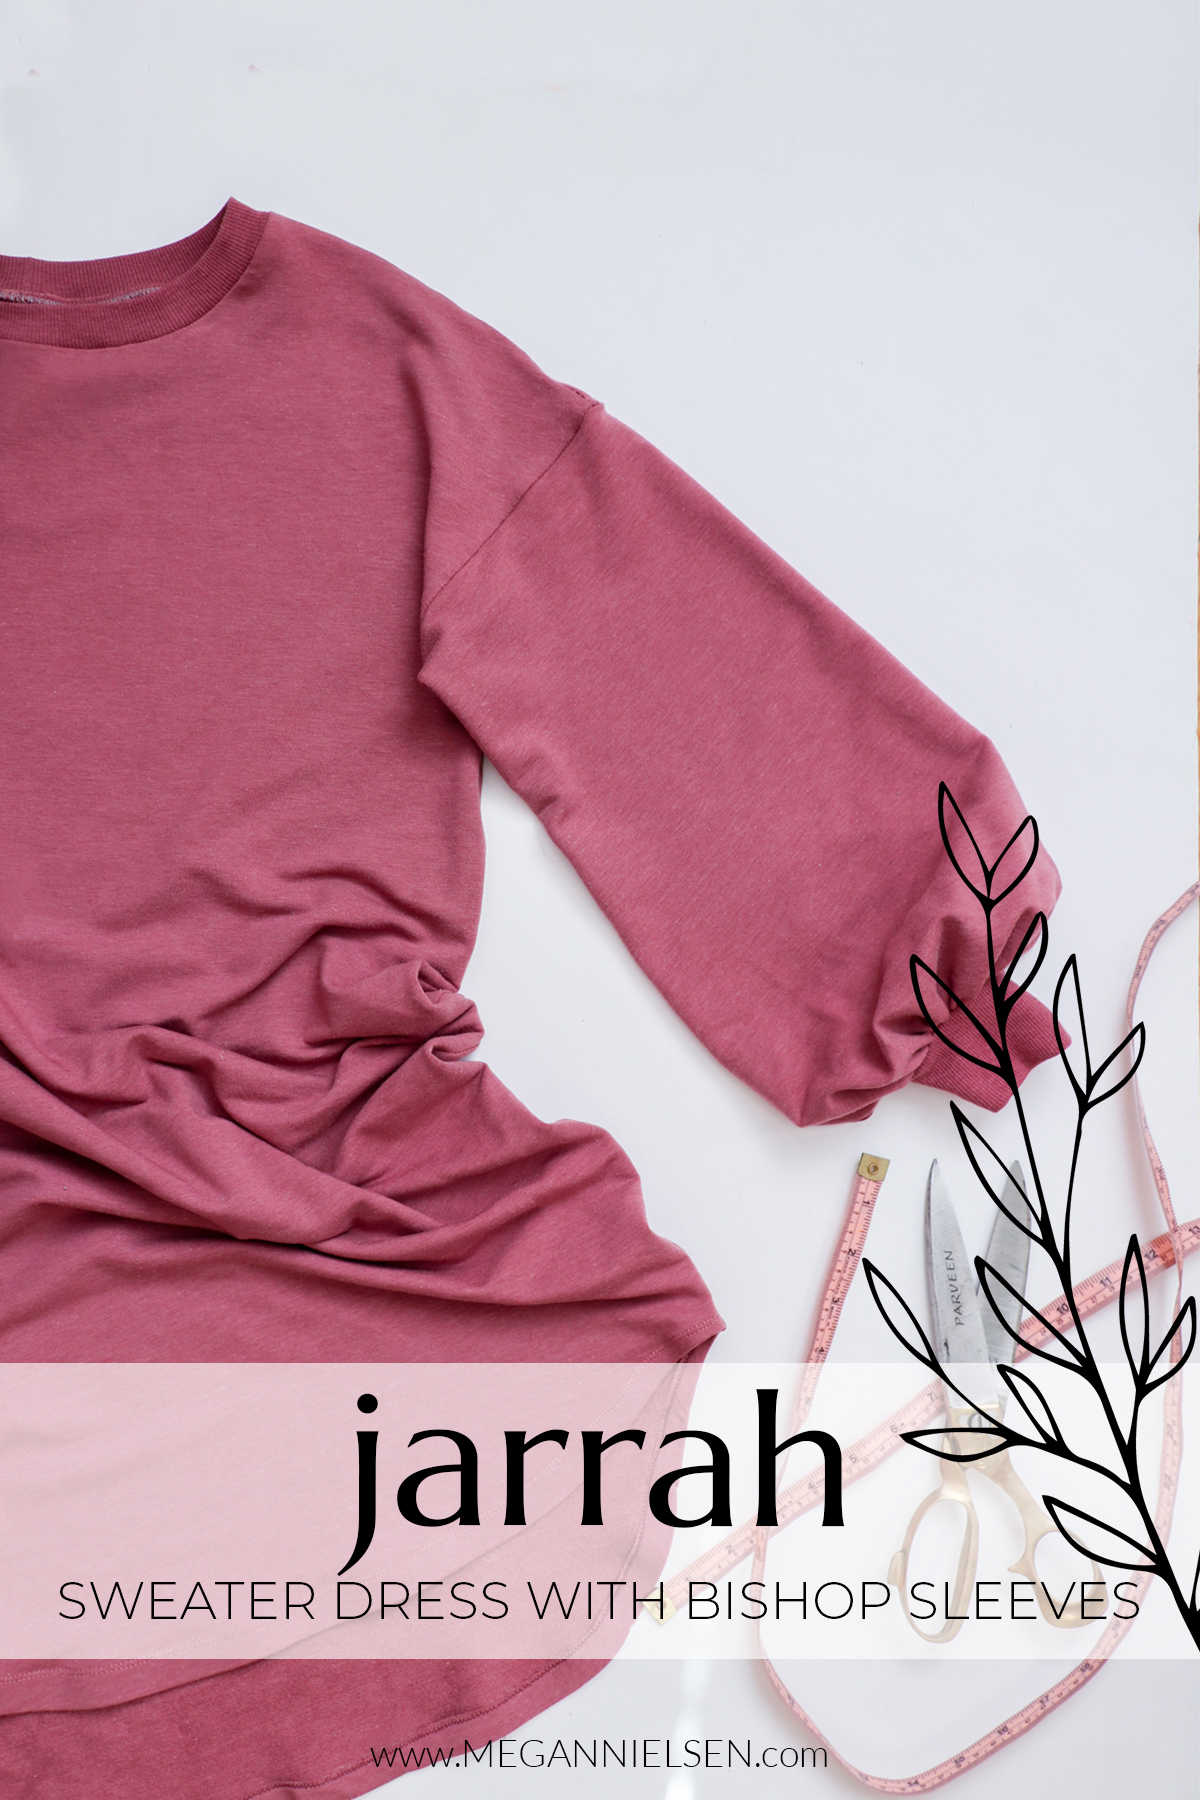 How to sew Jarrah as a dress with bishop sleeves